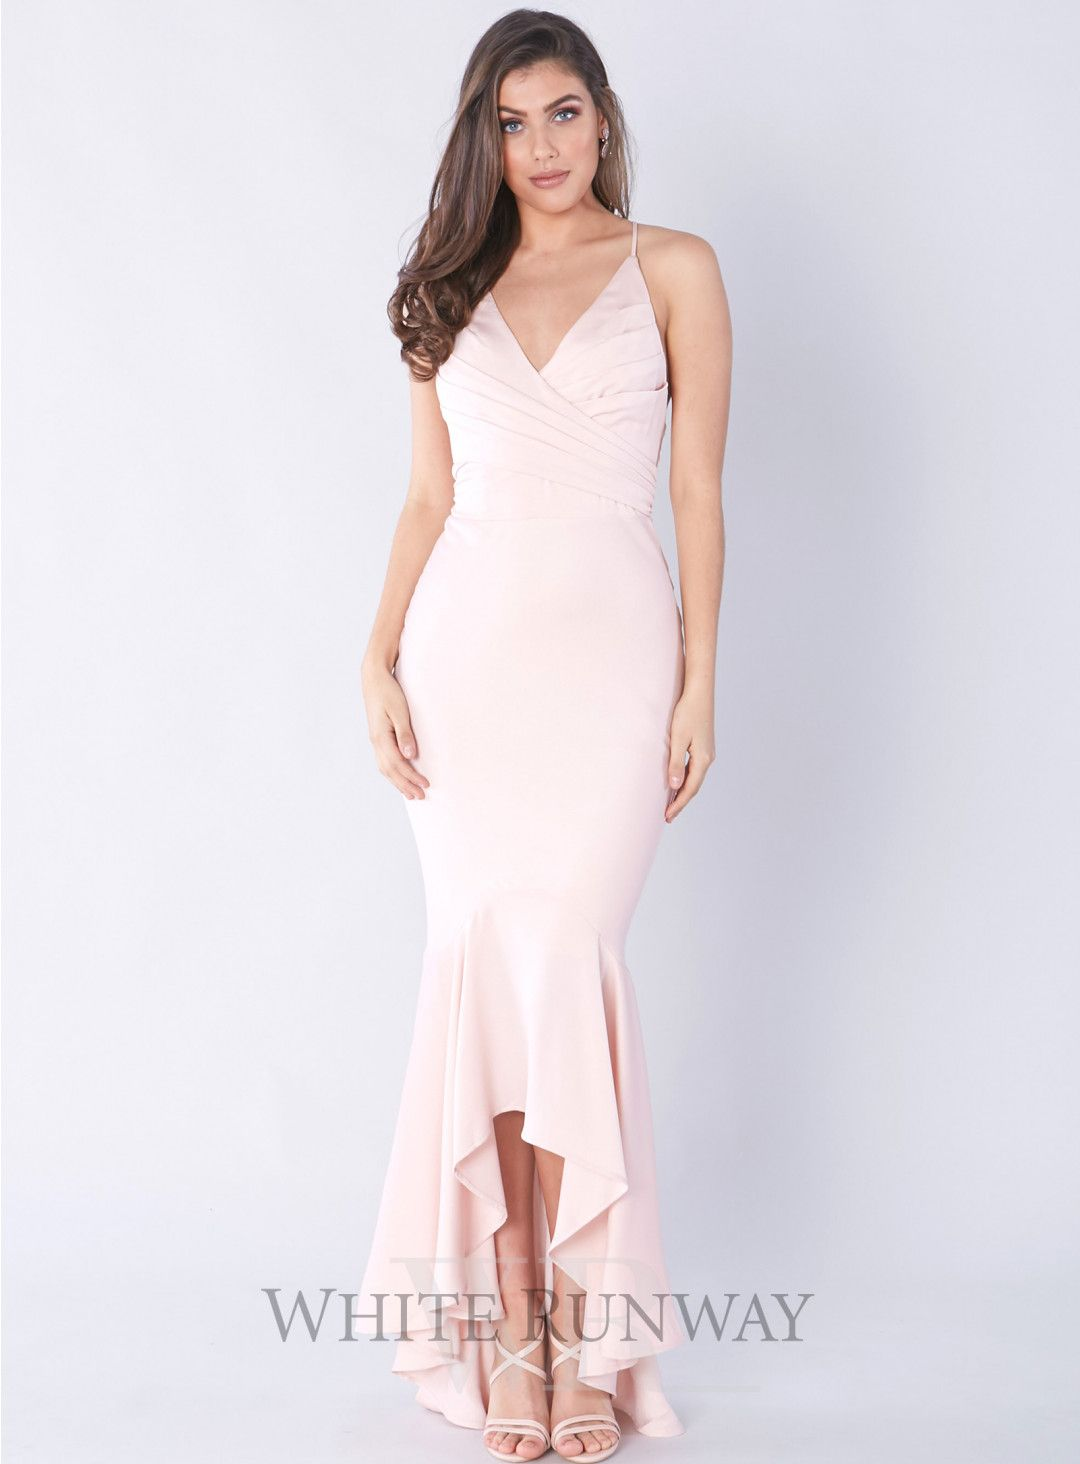 Wedding dresses for large busts  Julietus Delight Gown A beautiful hilow dress by Grace u Hart